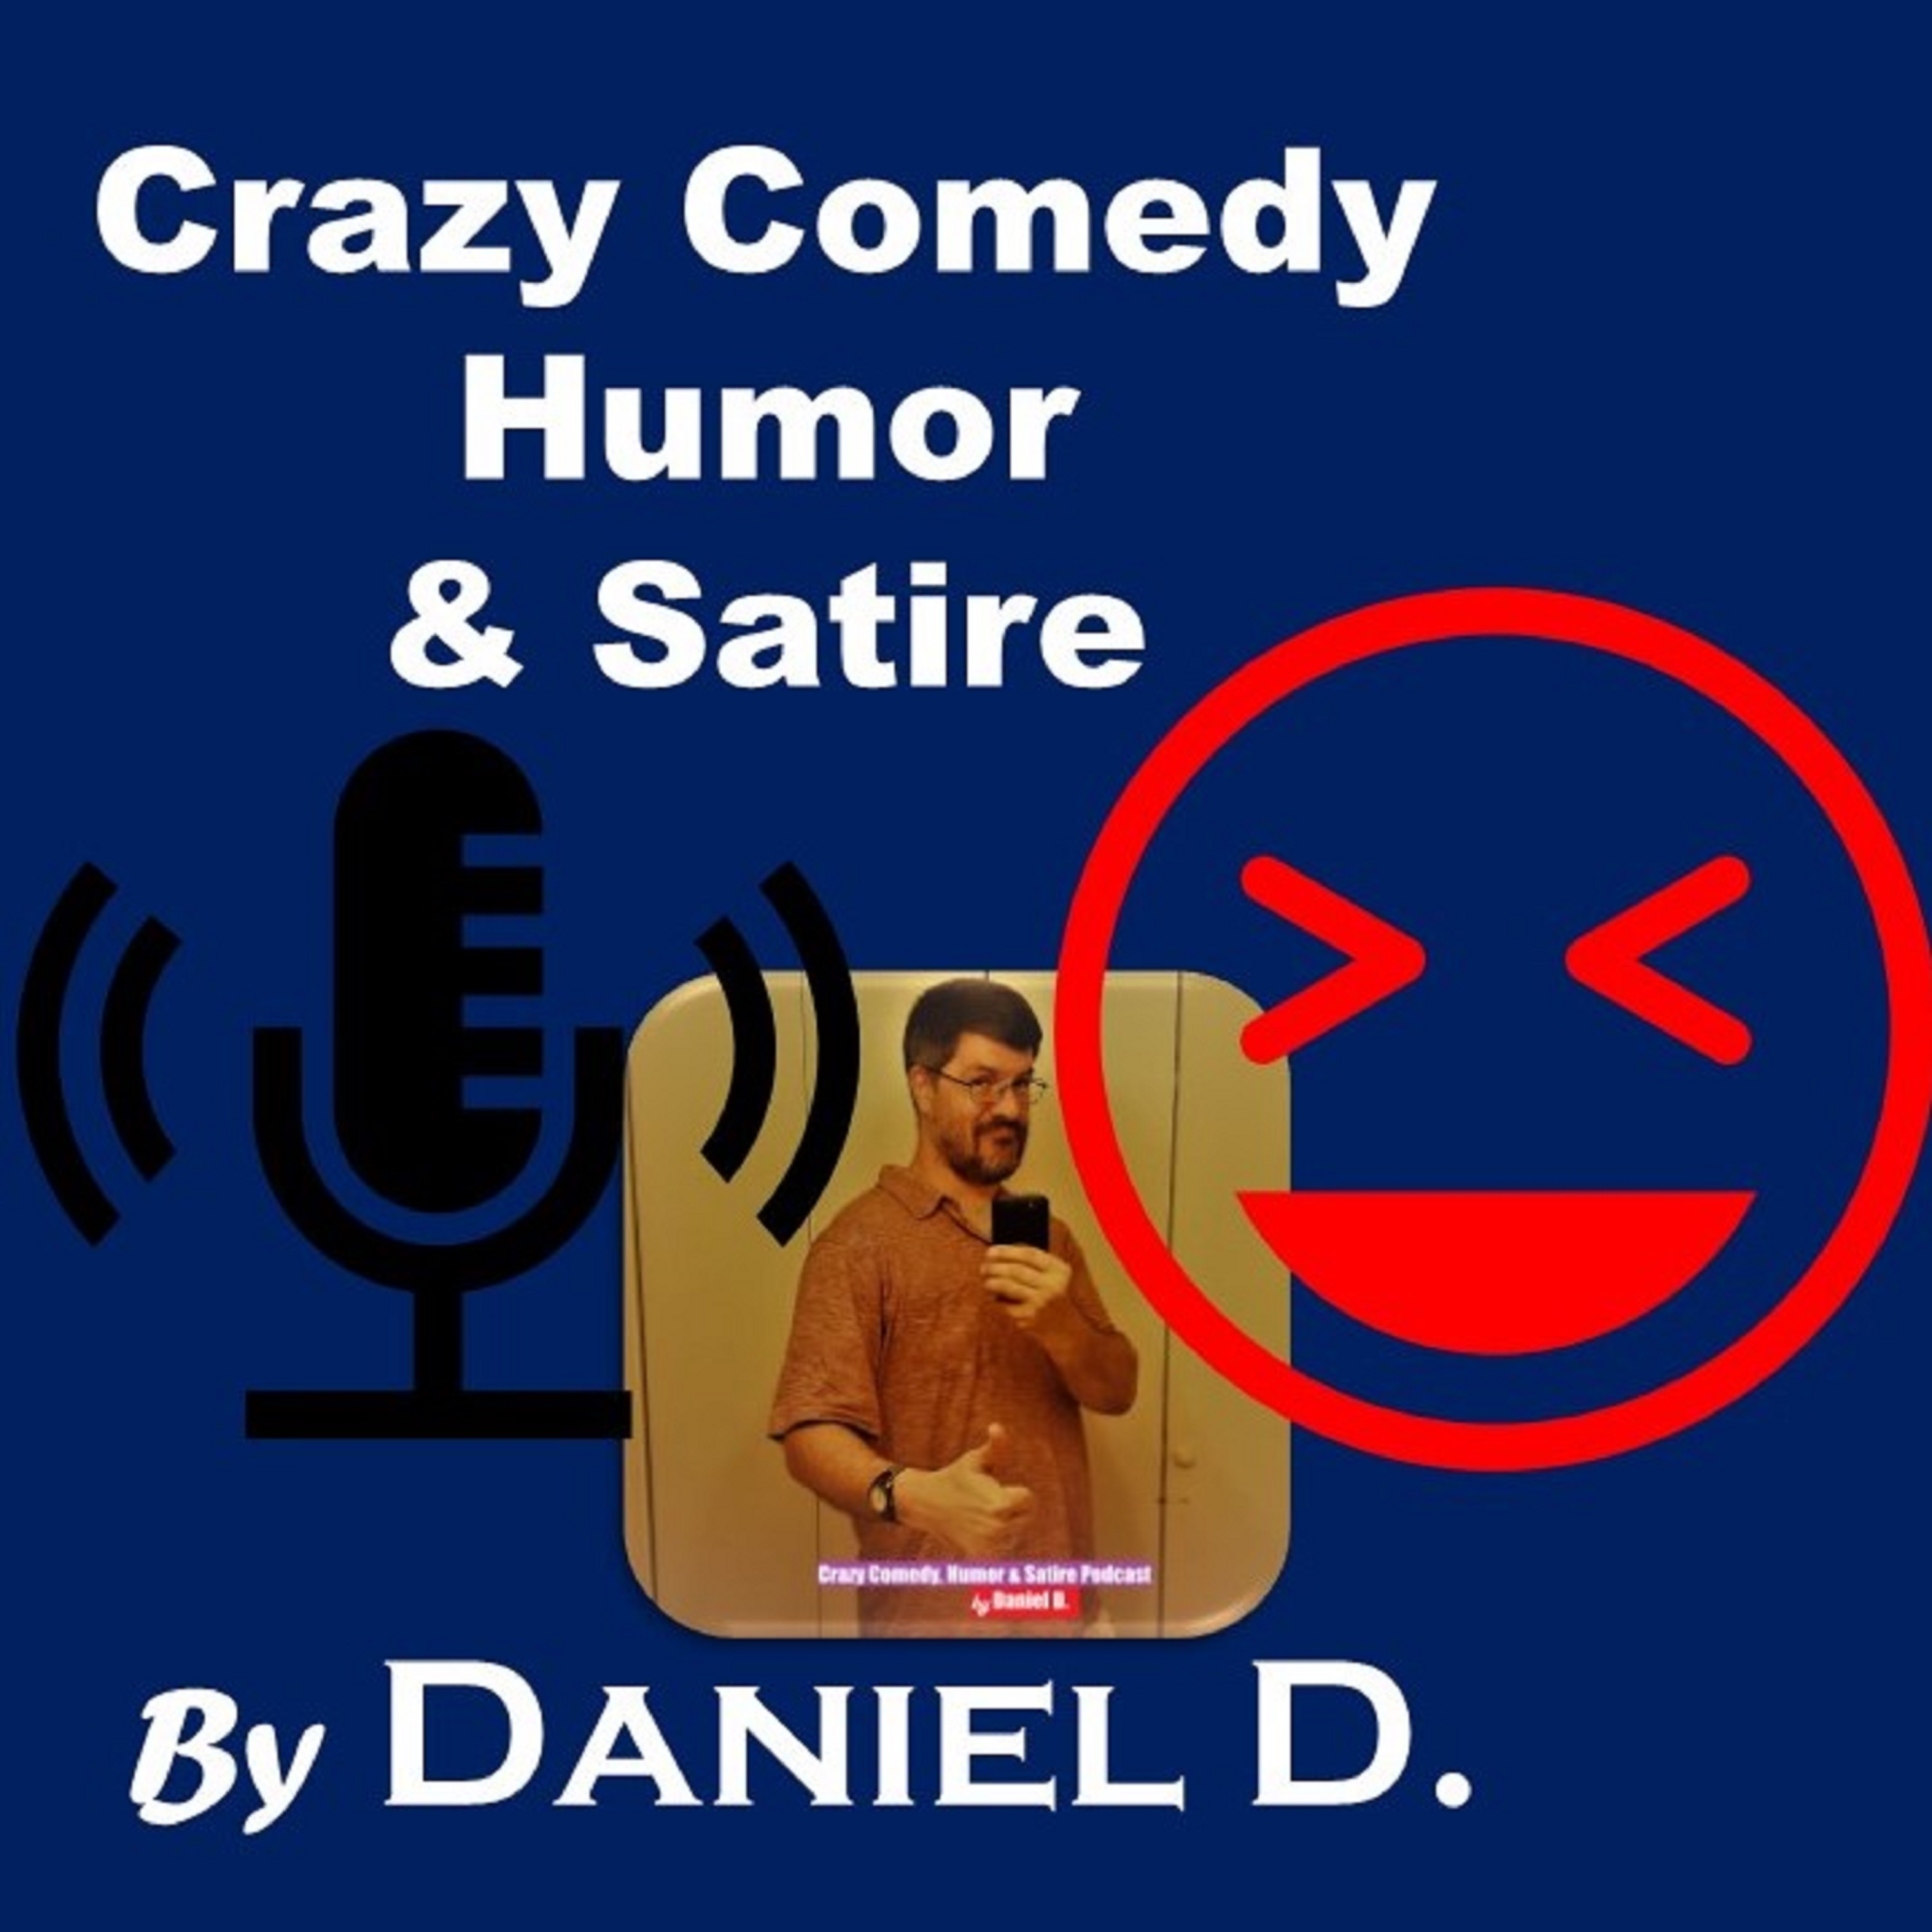 Artwork for Episode 10 of The Crazy Comedy, Humor & Satire Podcast, Season One